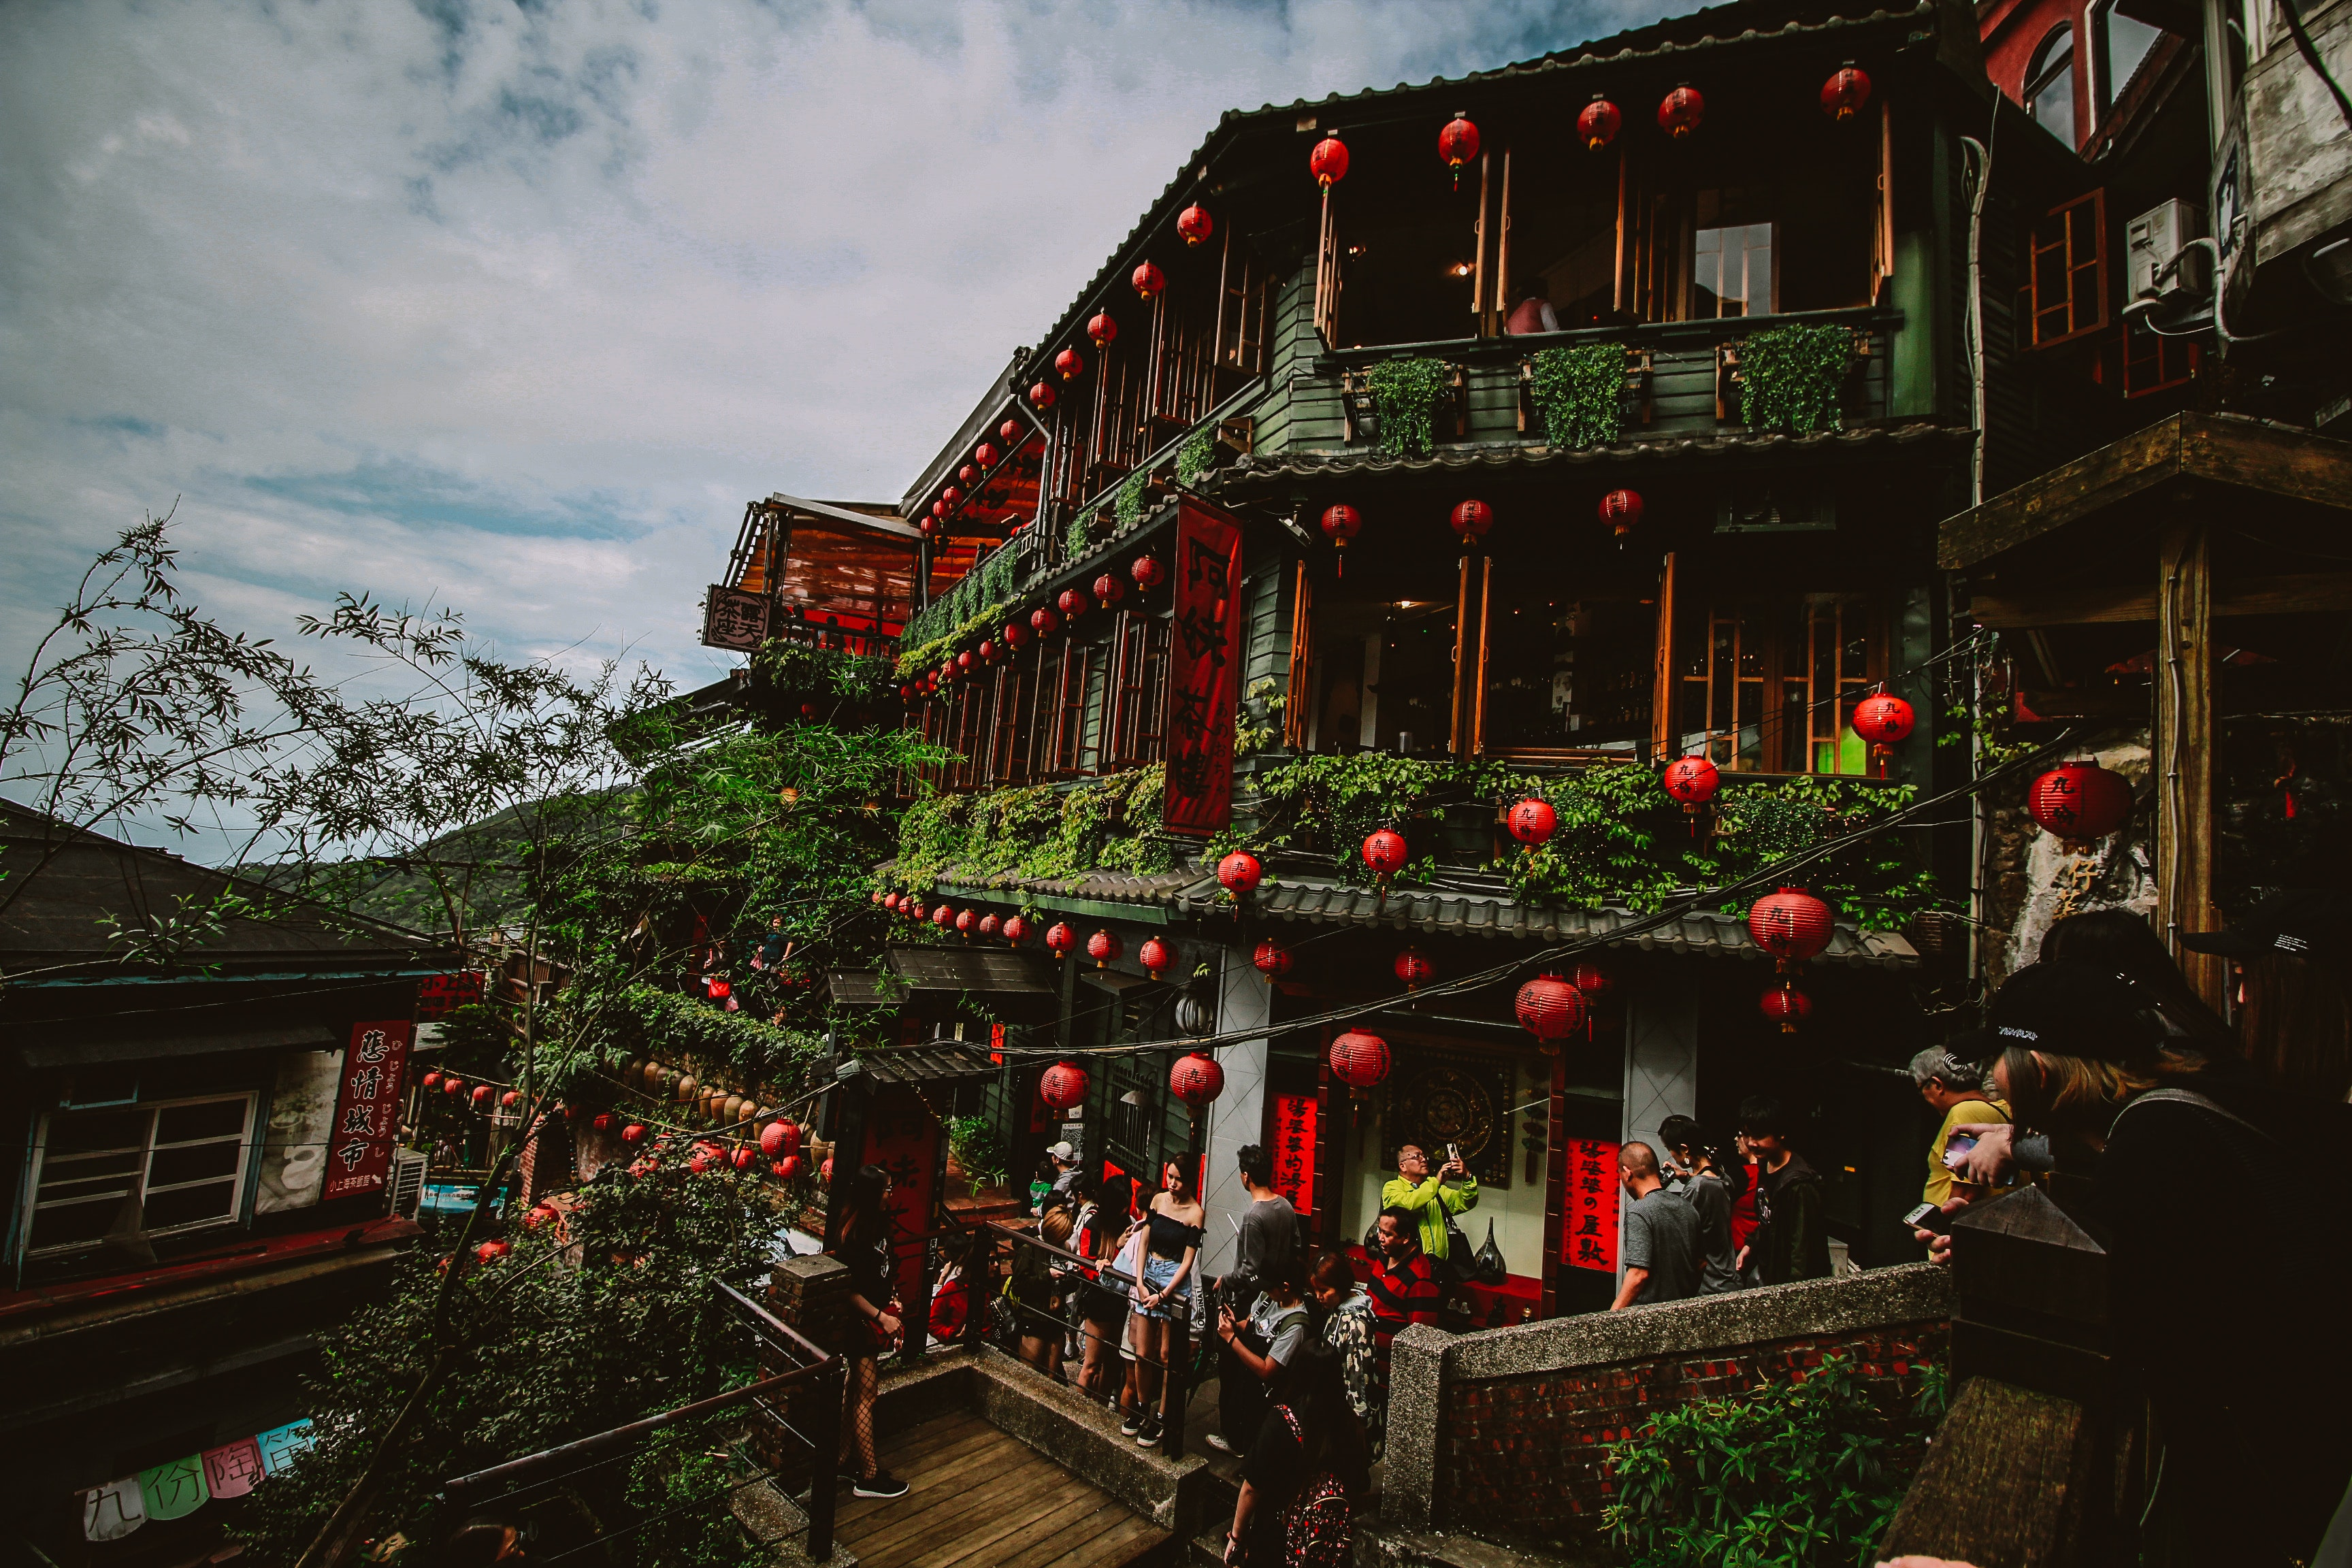 Photo of People in the Temple, Architecture, Taiwan, Trees, Travel, HQ Photo